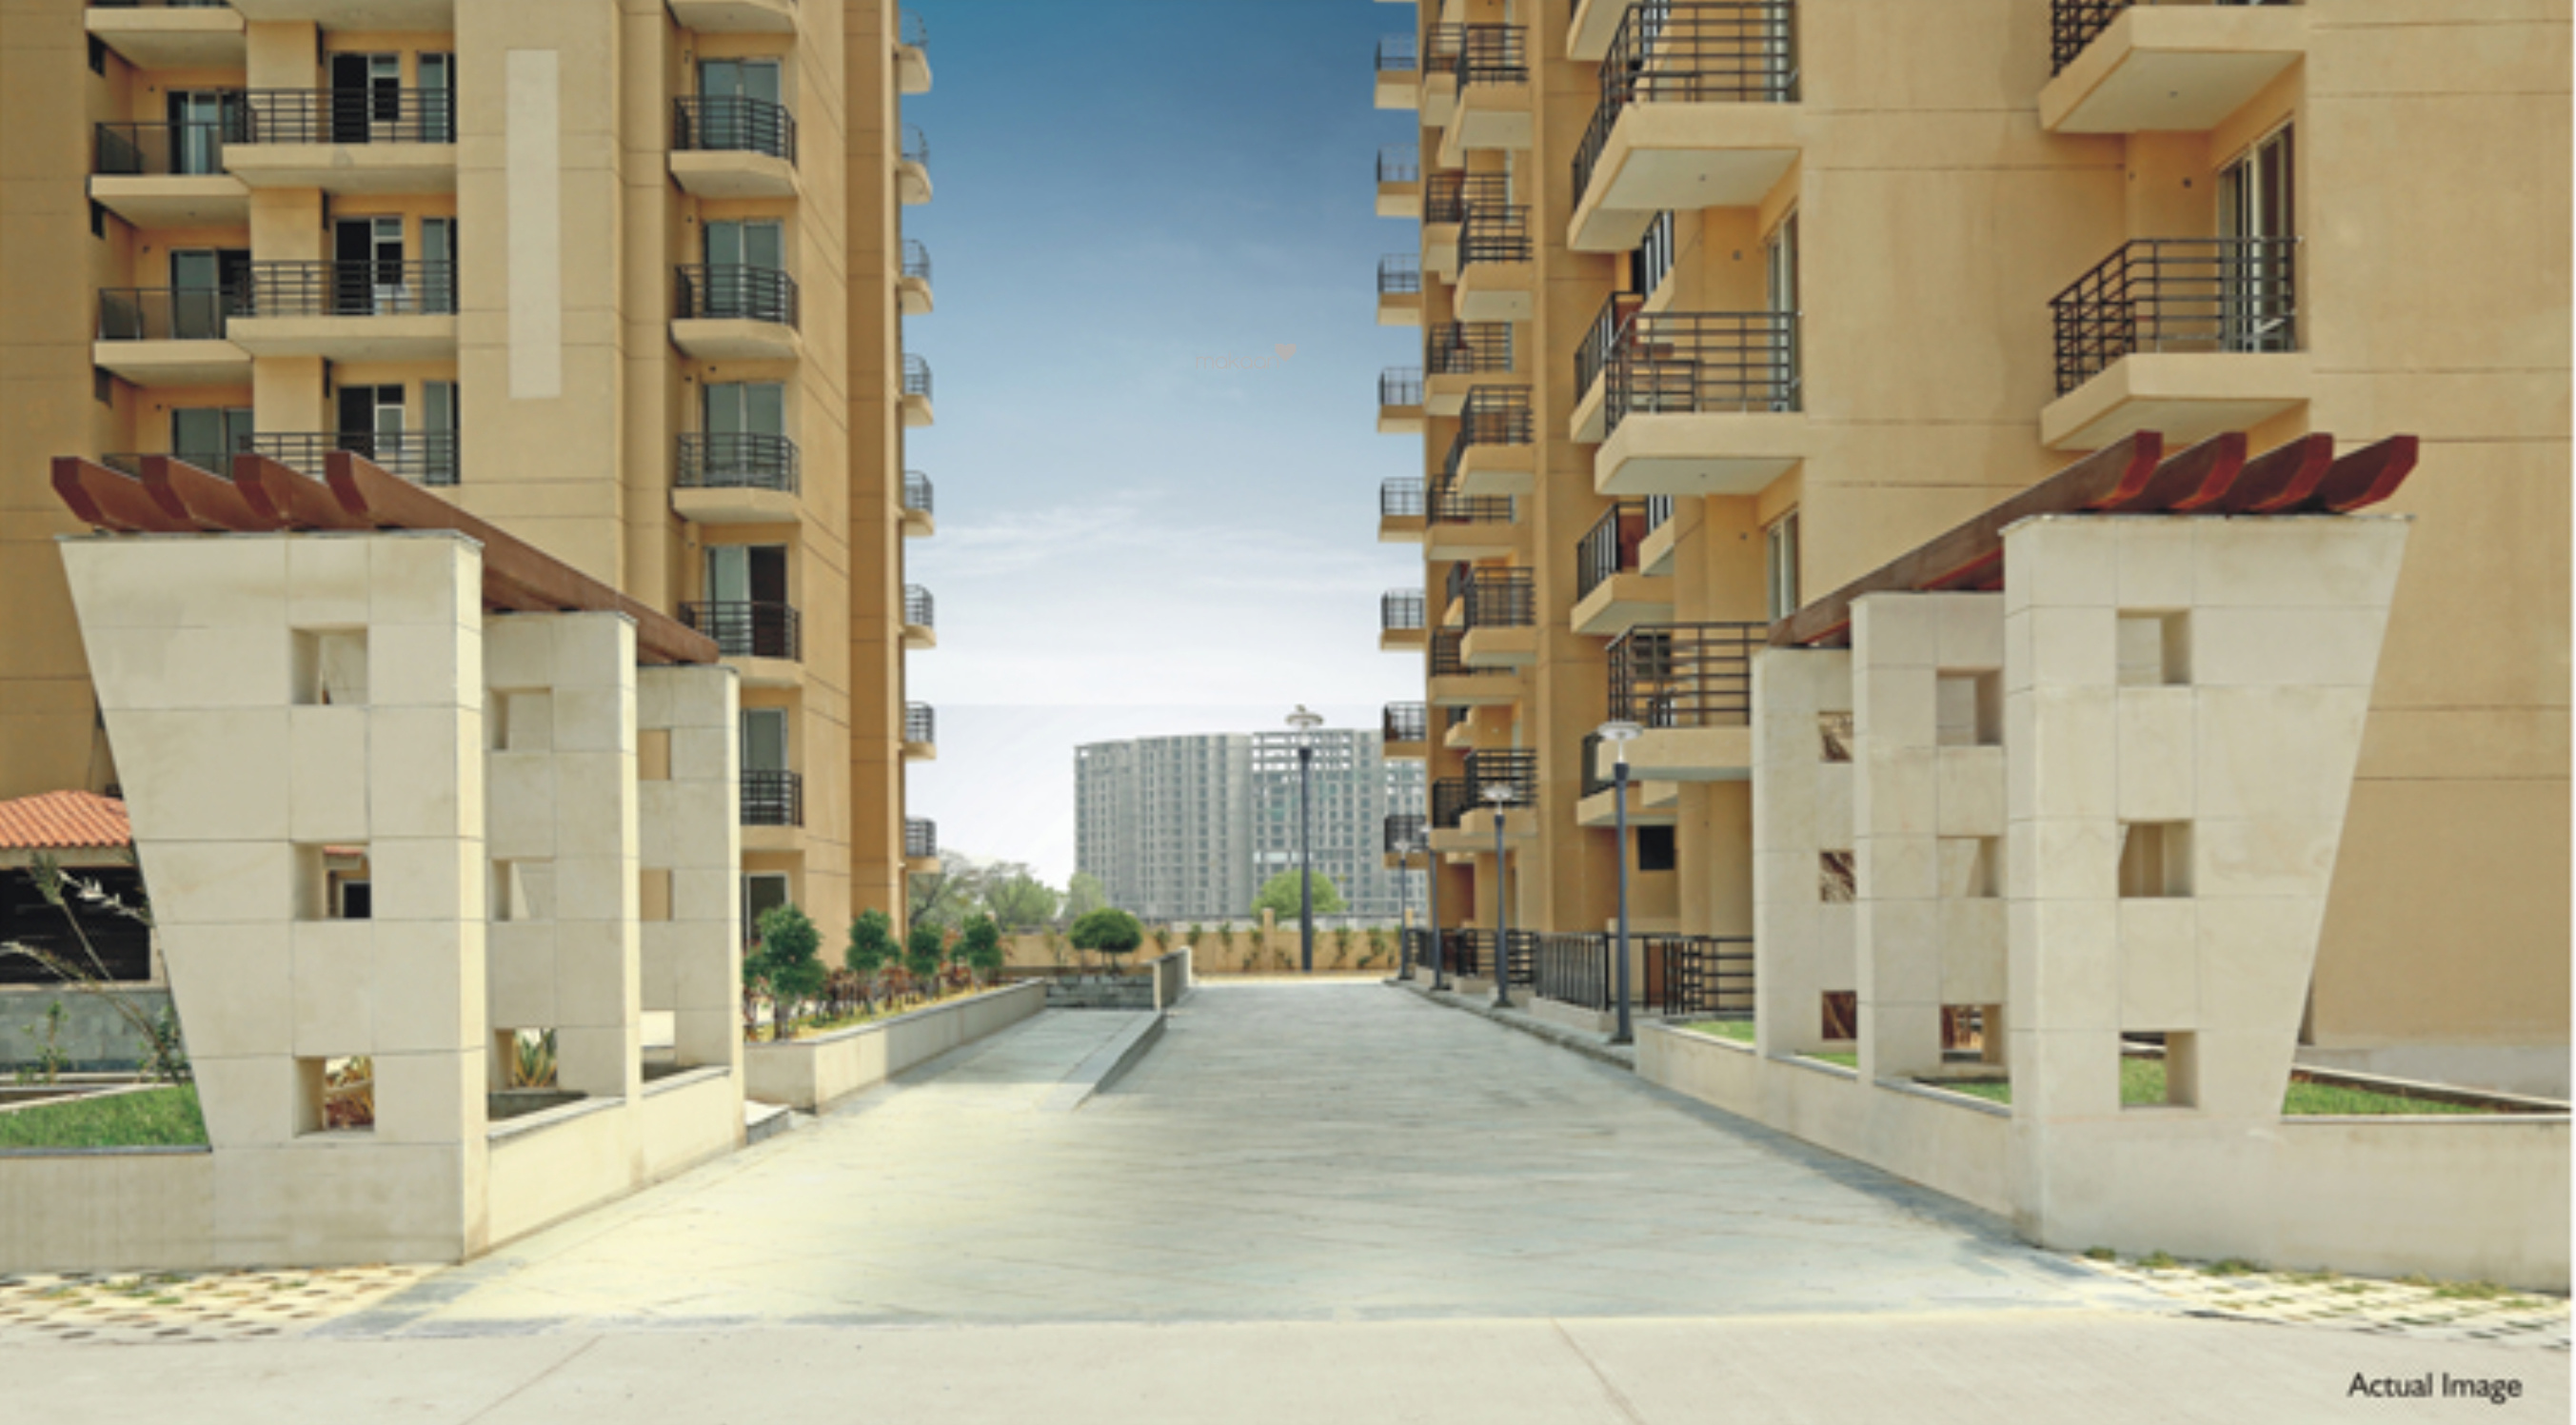 545 sq ft 1BHK 1BHK+1T (545 sq ft) + Pooja Room Property By Property Space In The Hermitage, Sector 103